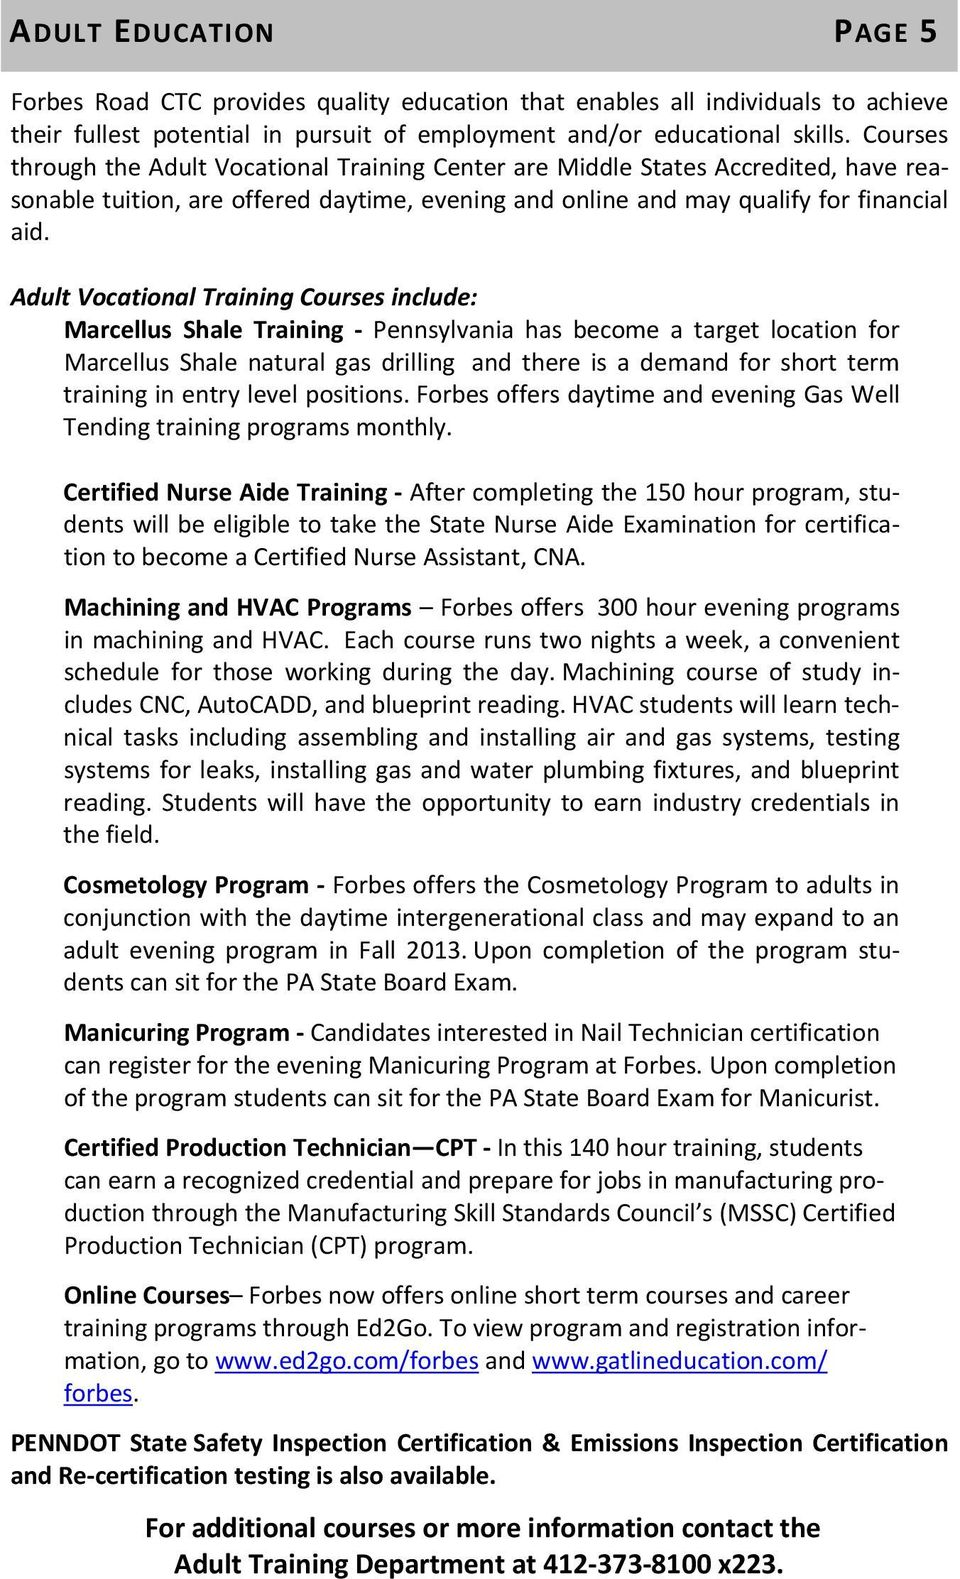 Adult Vocational Training Courses include: Marcellus Shale Training Pennsylvania has become a target location for Marcellus Shale natural gas drilling and there is a demand for short term training in